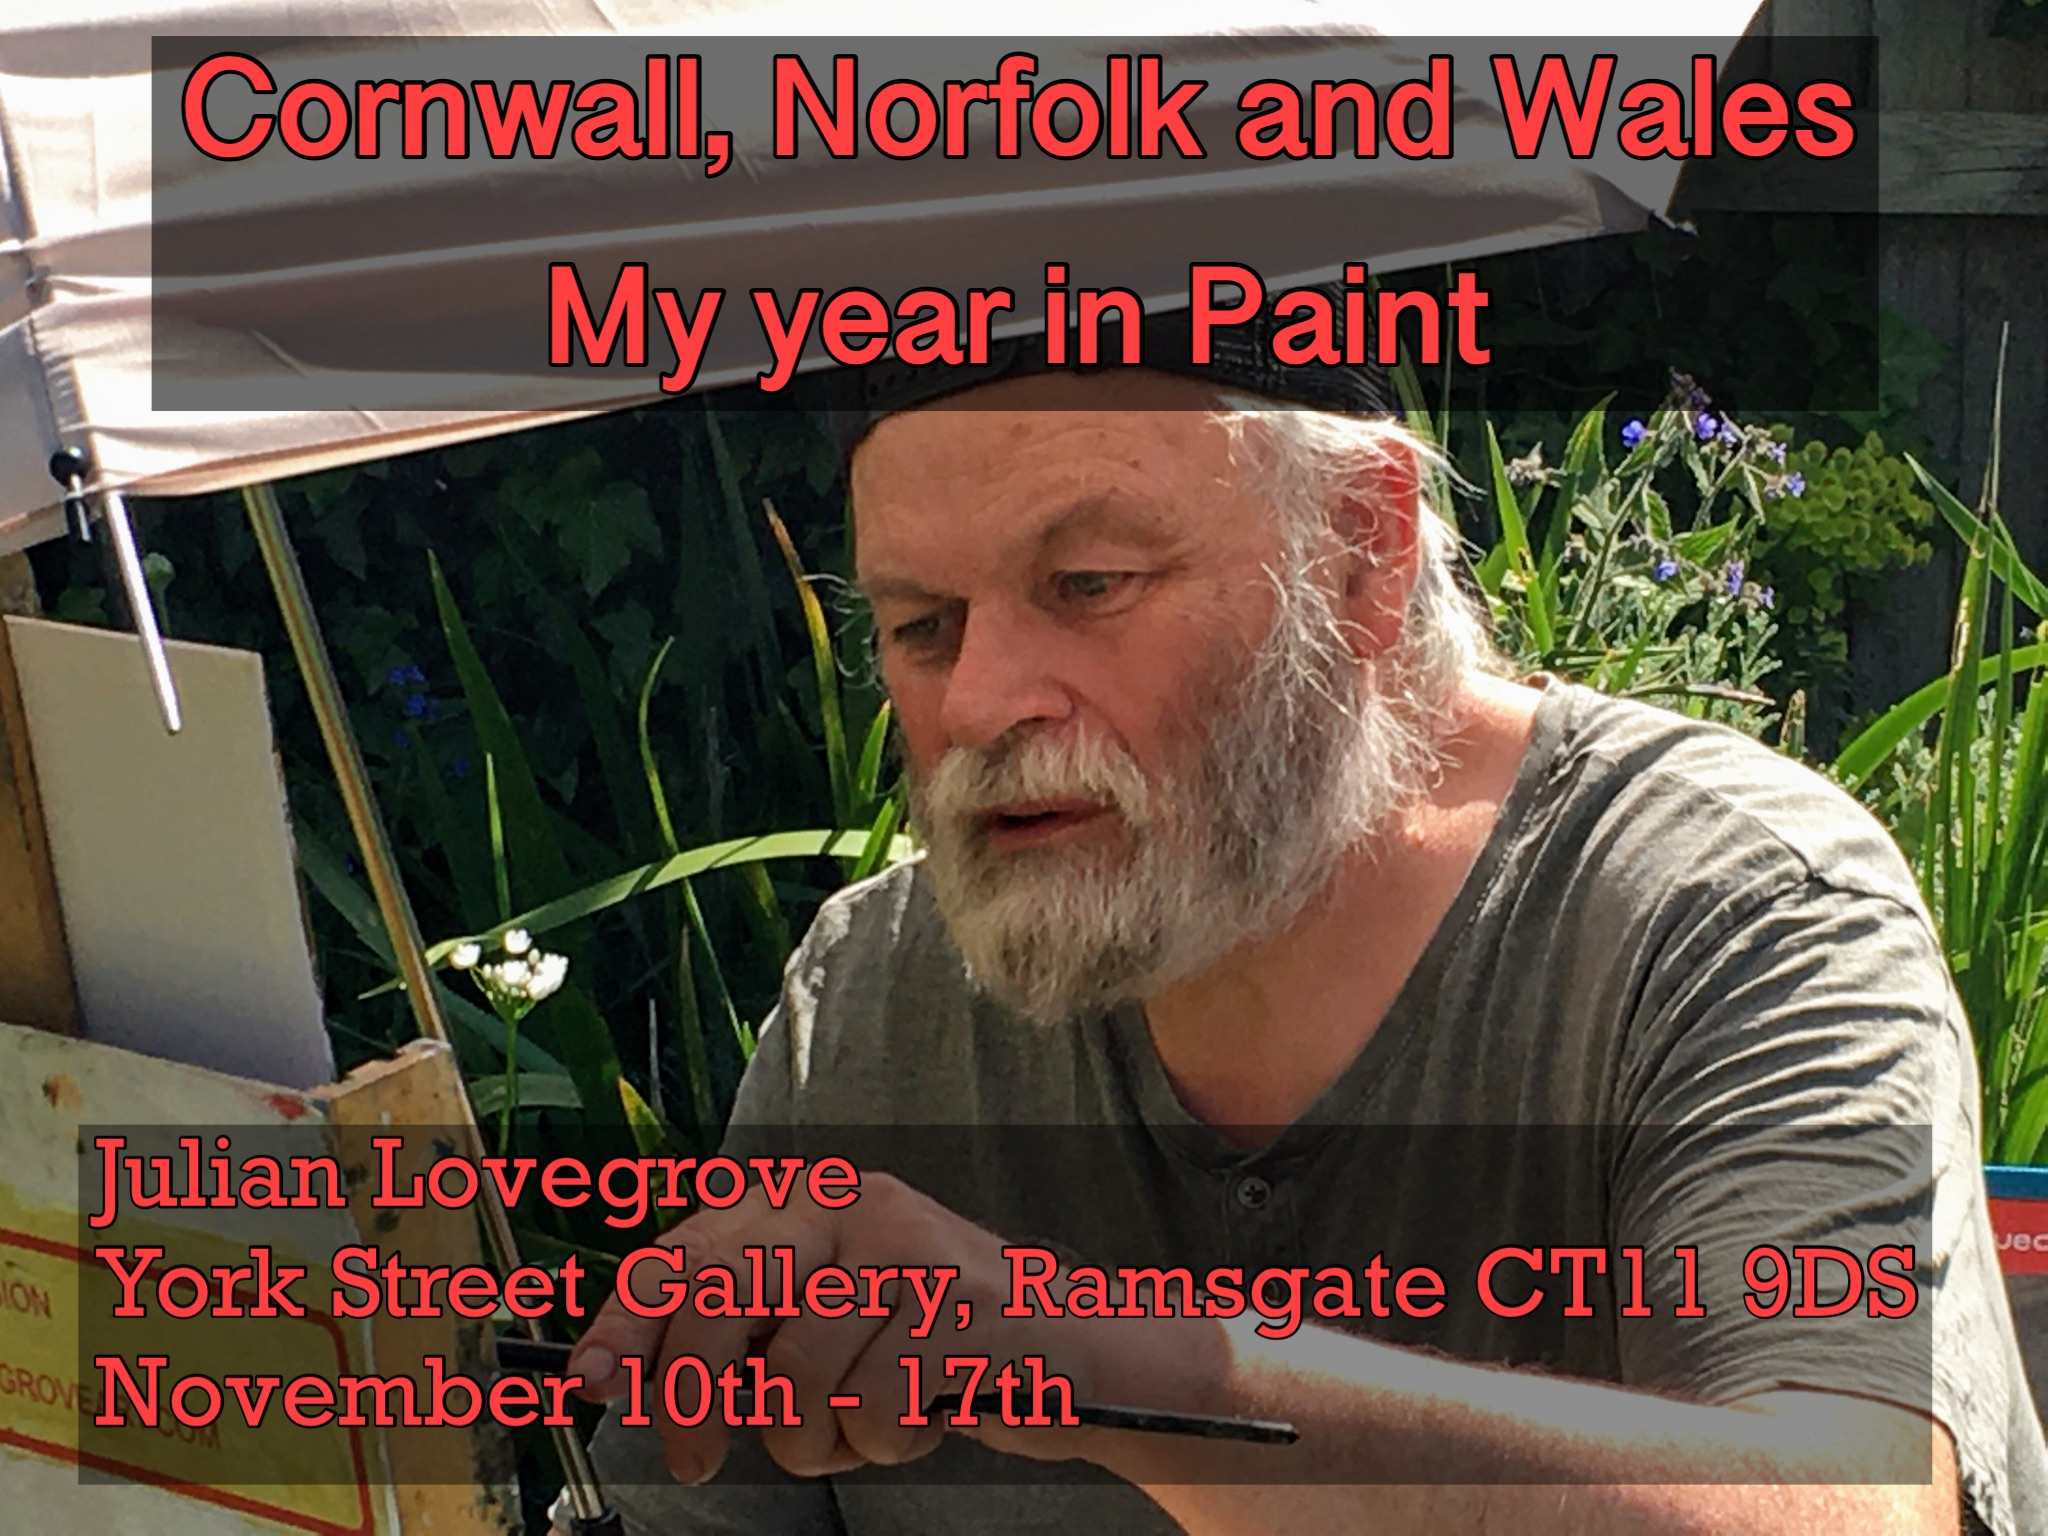 Cornwall, Norfolk and Wales, my year in paint